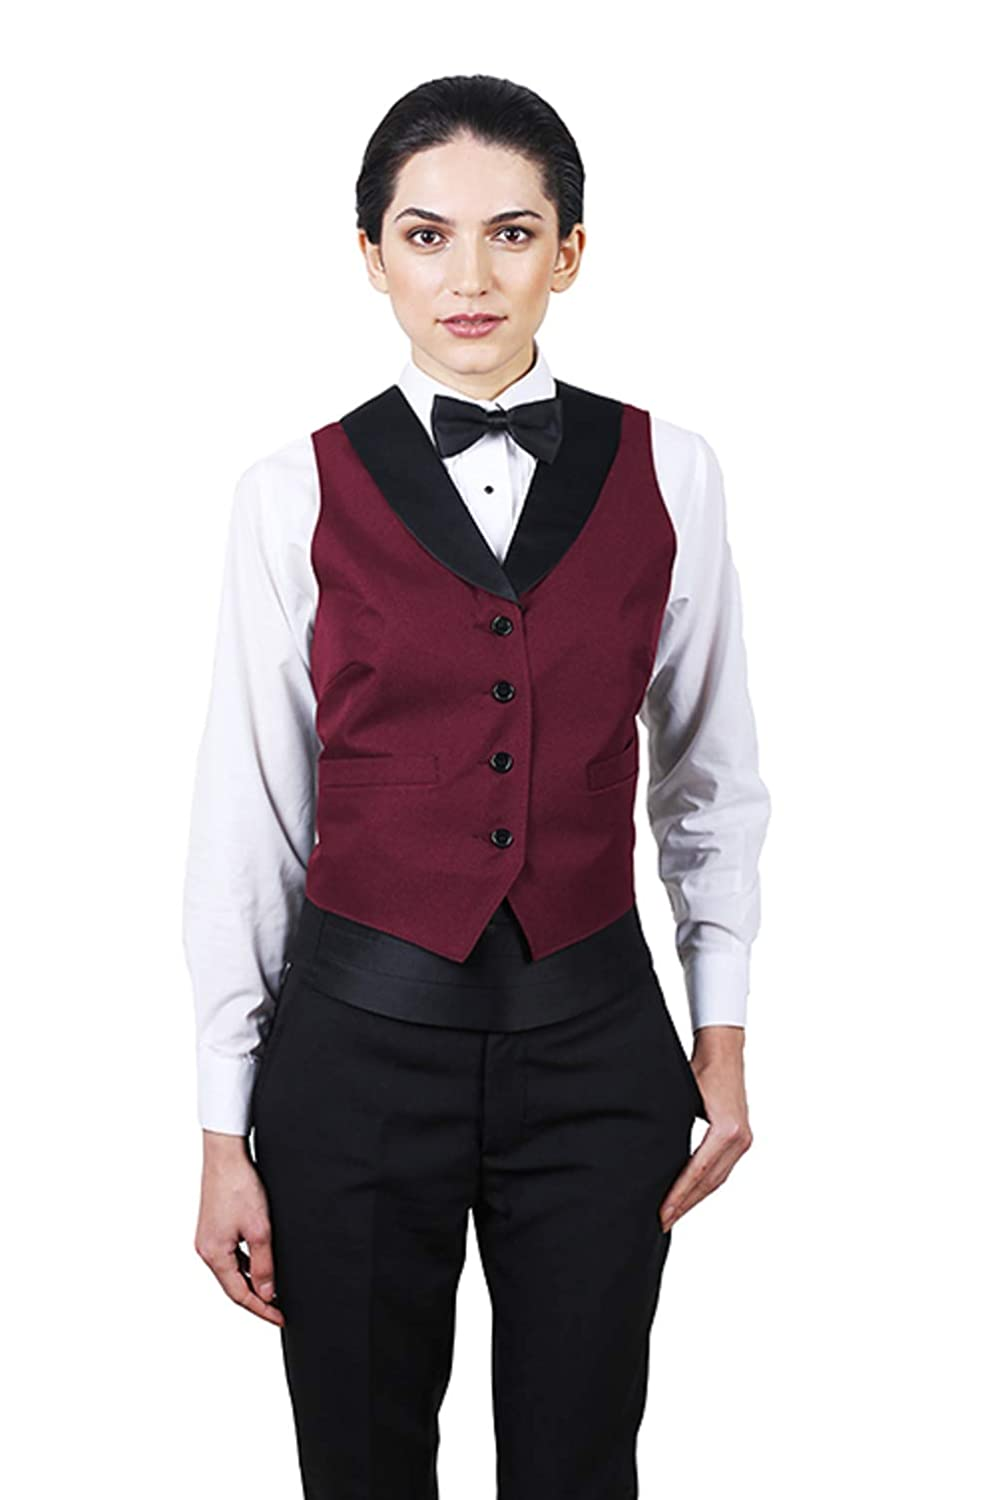 654a1157bc2 SixStarUniforms Women's Full Back Tuxedo Vest with Black Lapel at Amazon  Women's Clothing store: